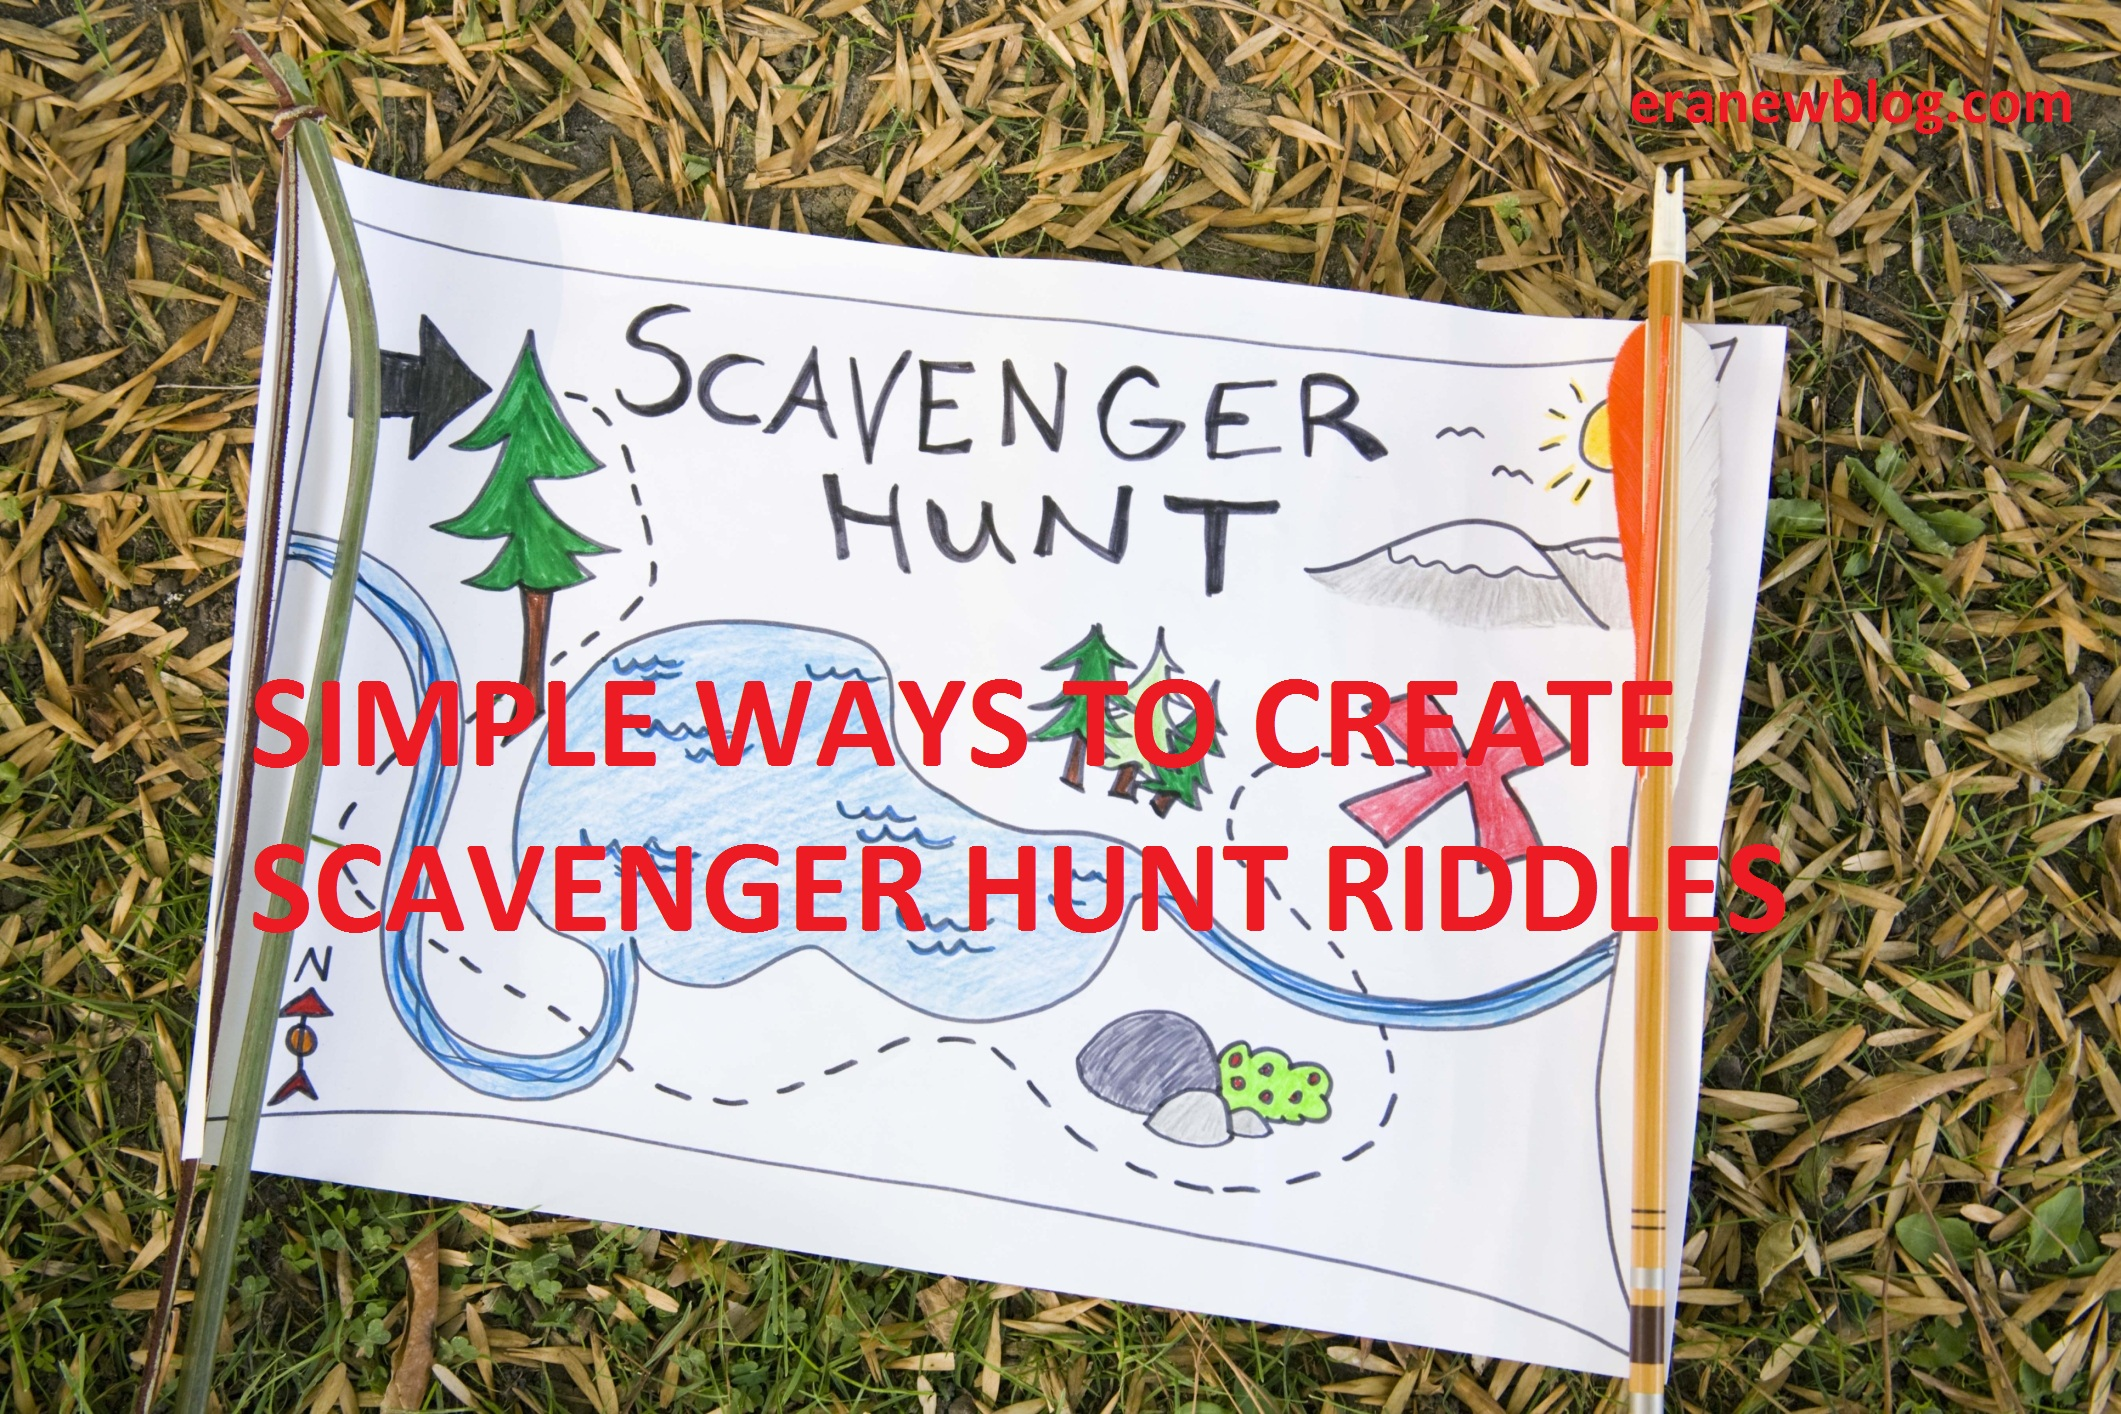 SIMPLE WAYS TO CREATE SCAVENGER HUNT RIDDLES